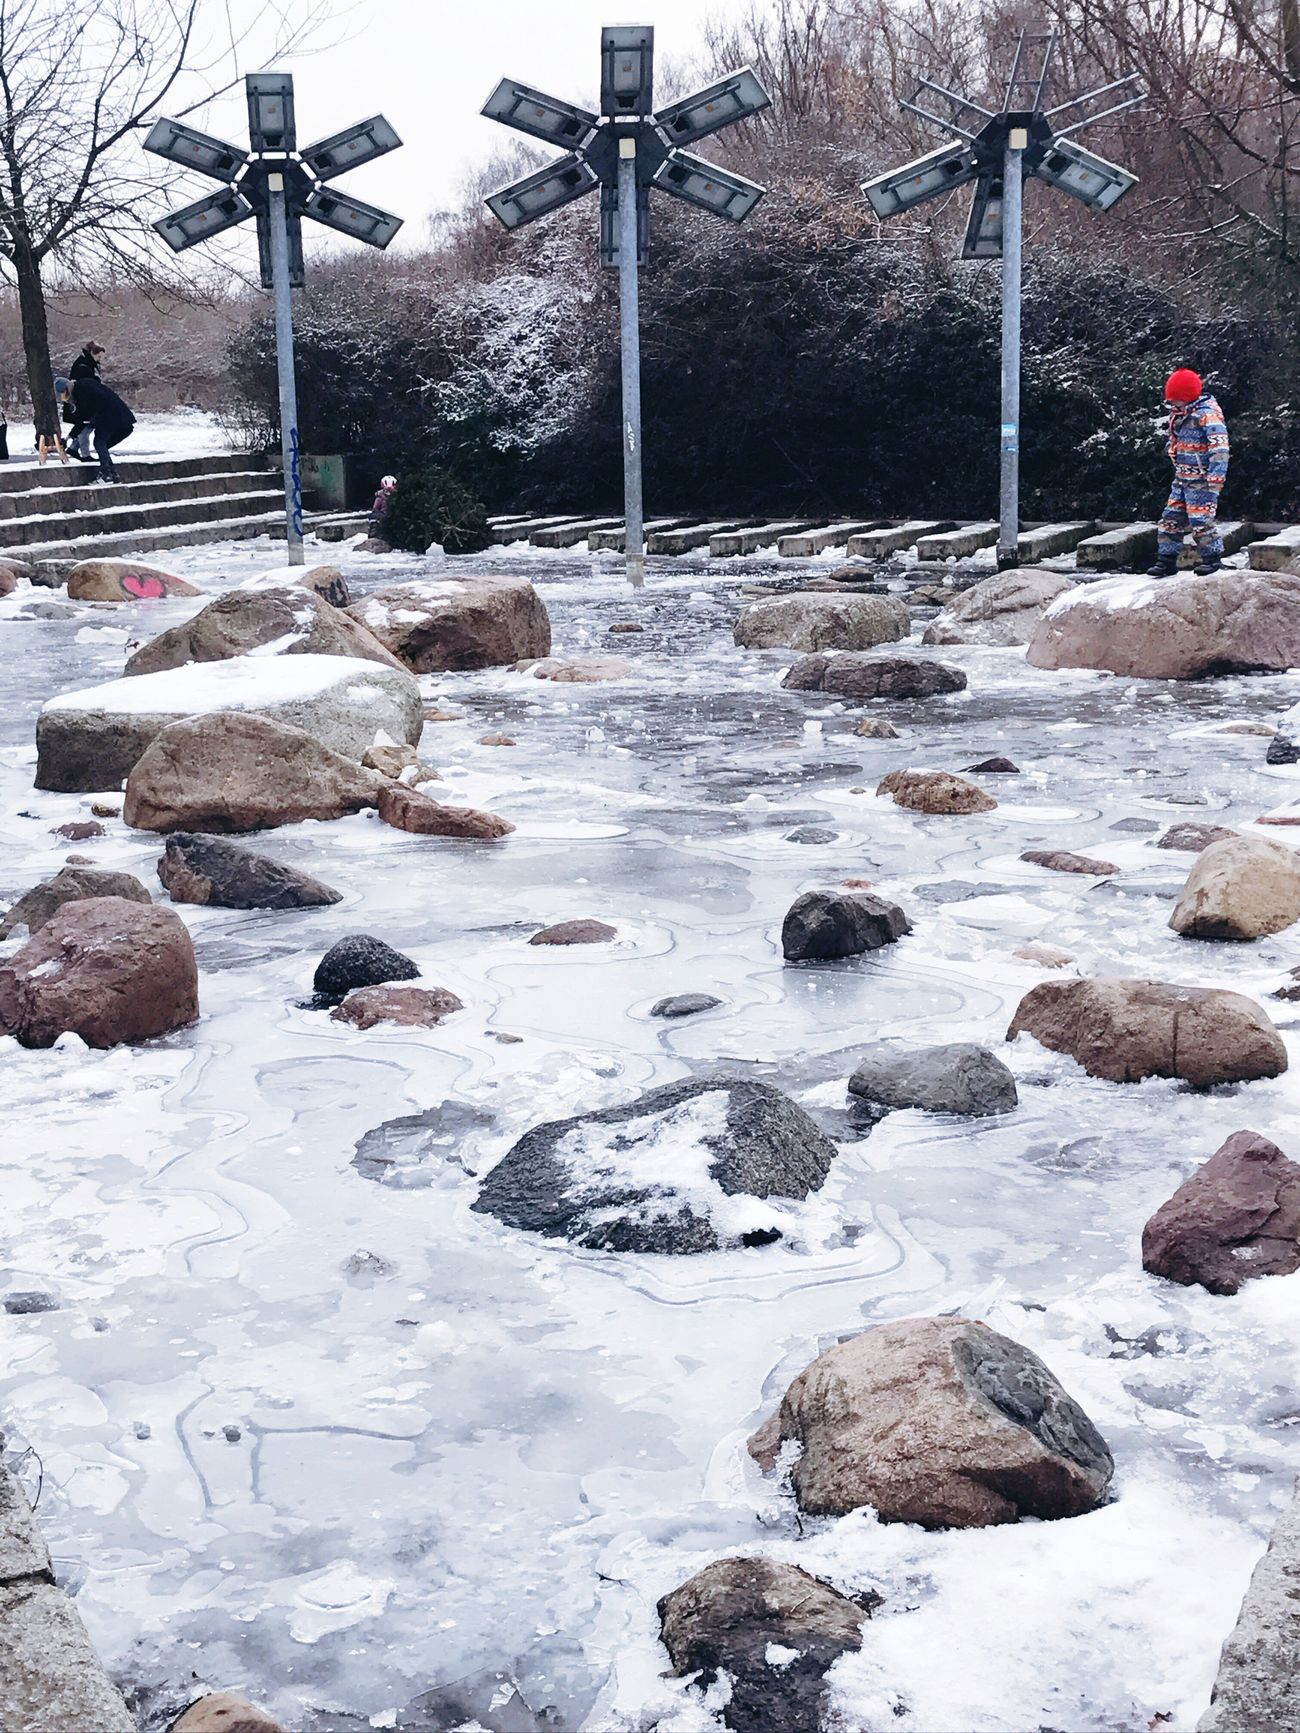 Cold Temperature Winter Frosty Looking Down Cold Days Ice Rocks In Water Frozen Kids Playing City Life